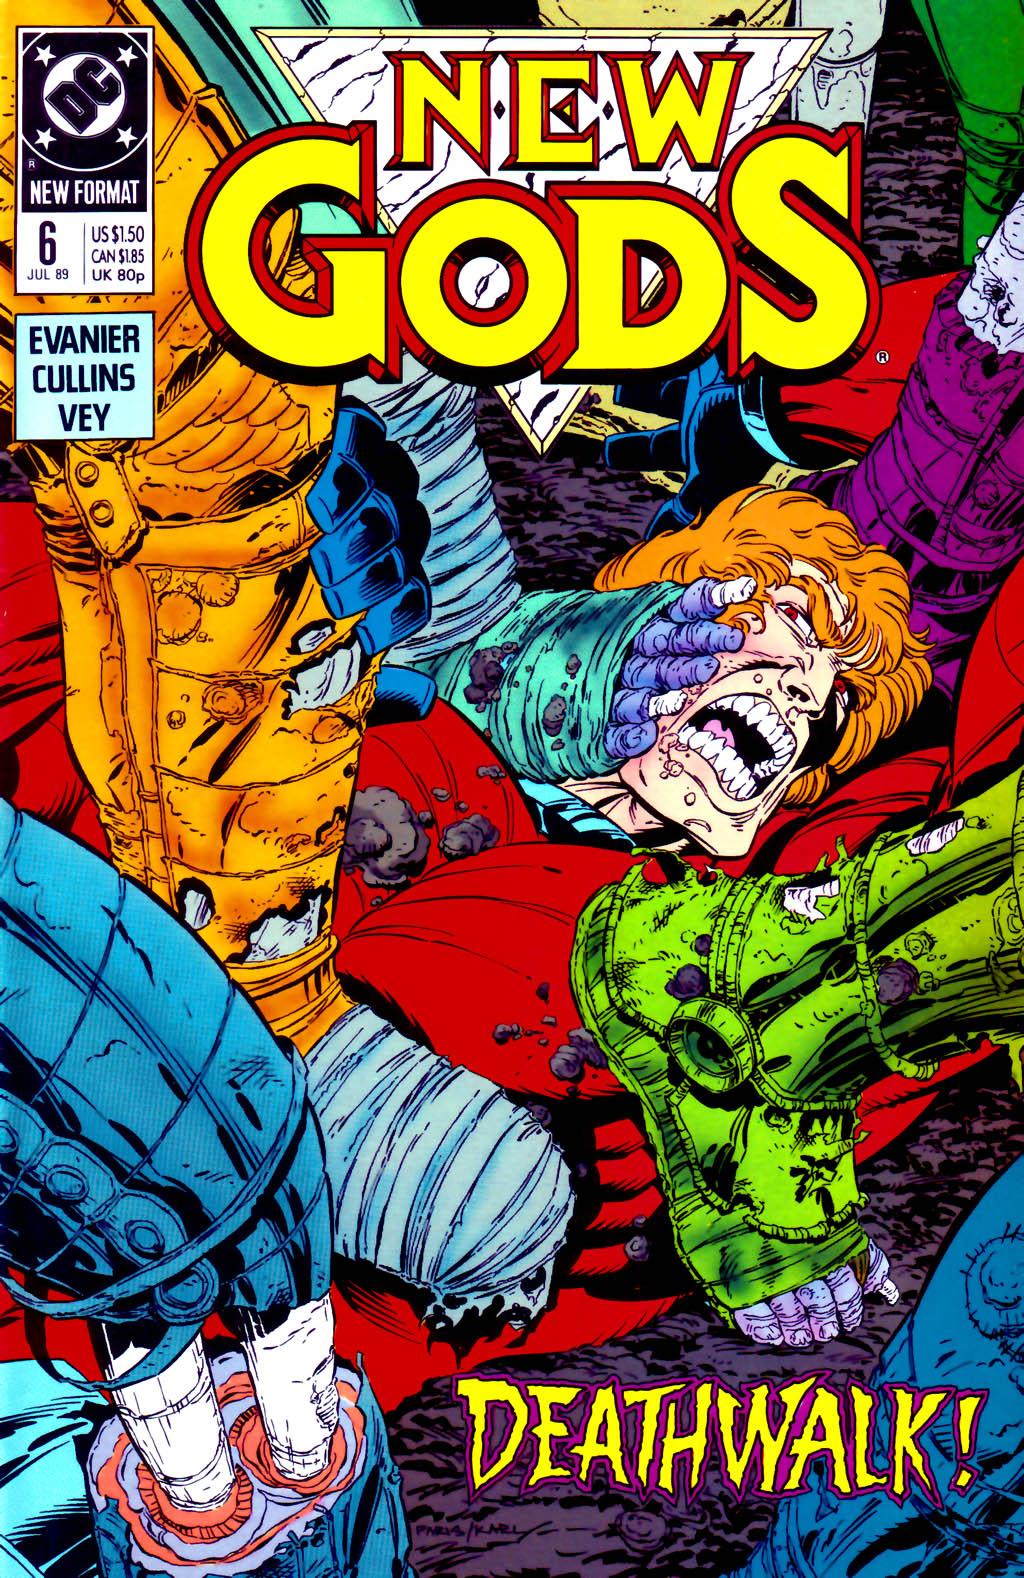 The New Gods (1989) 6 Page 1